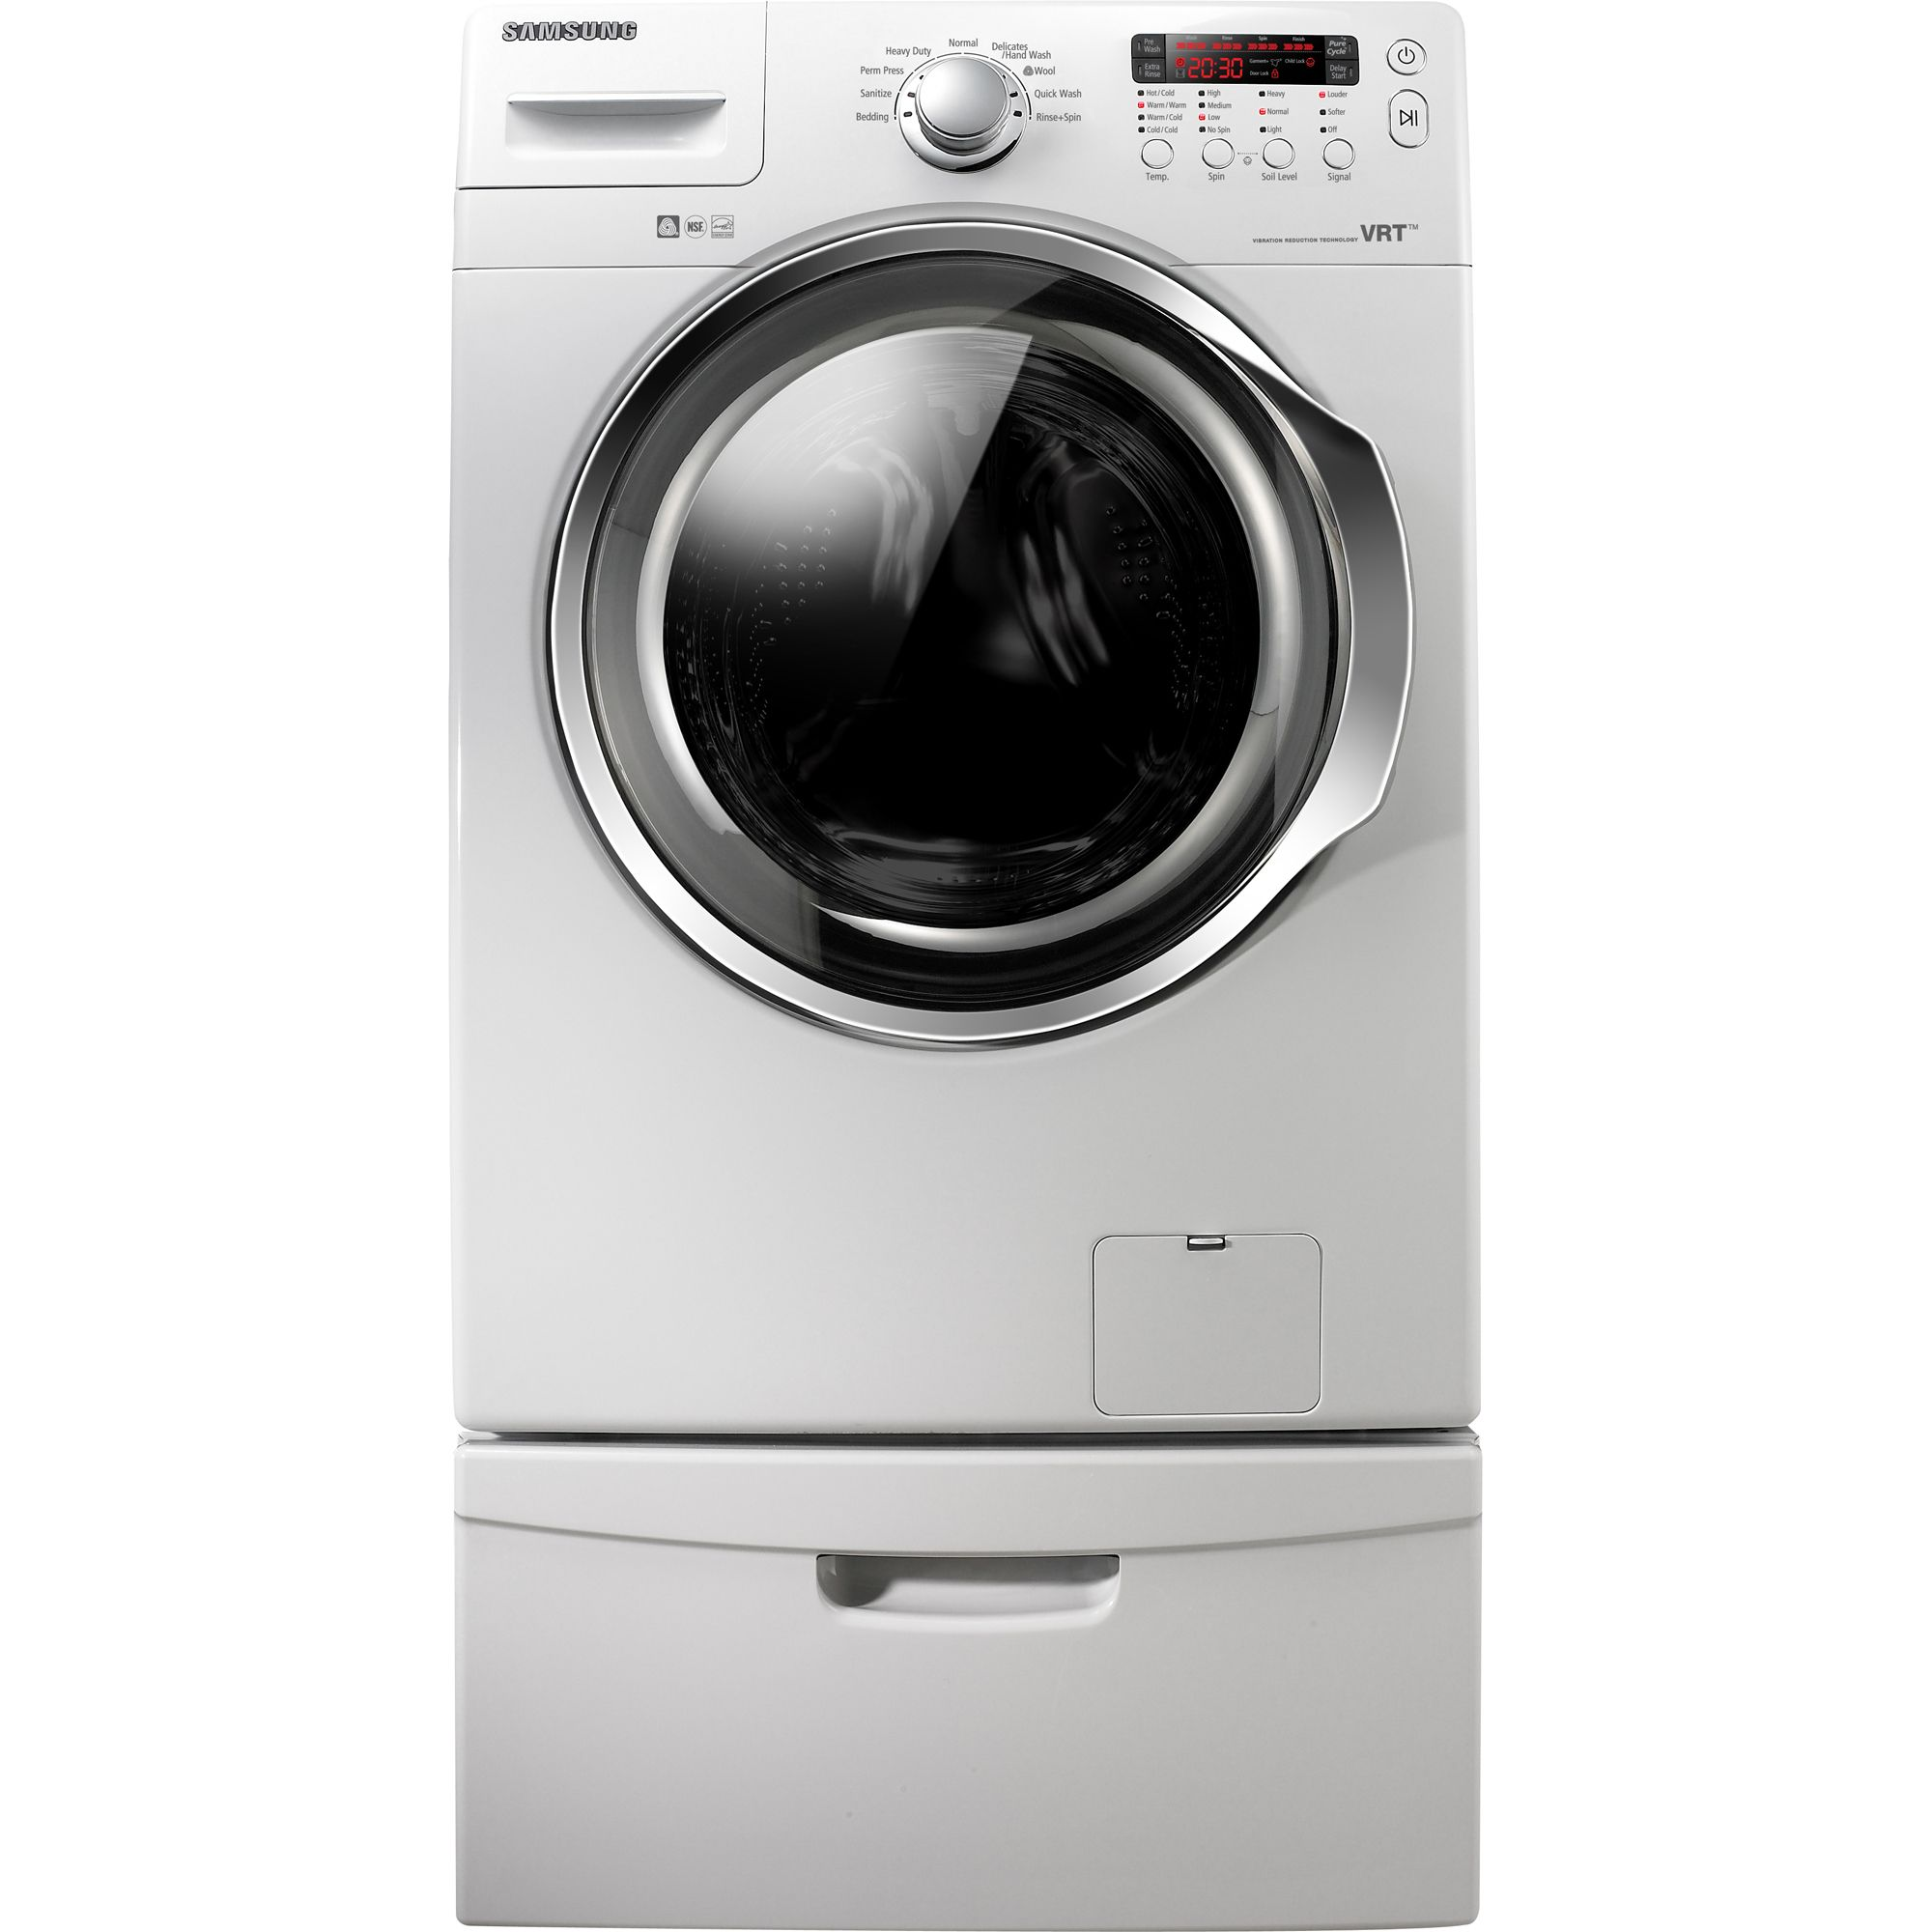 Samsung 3.7 cu. ft. Front-Load Washer